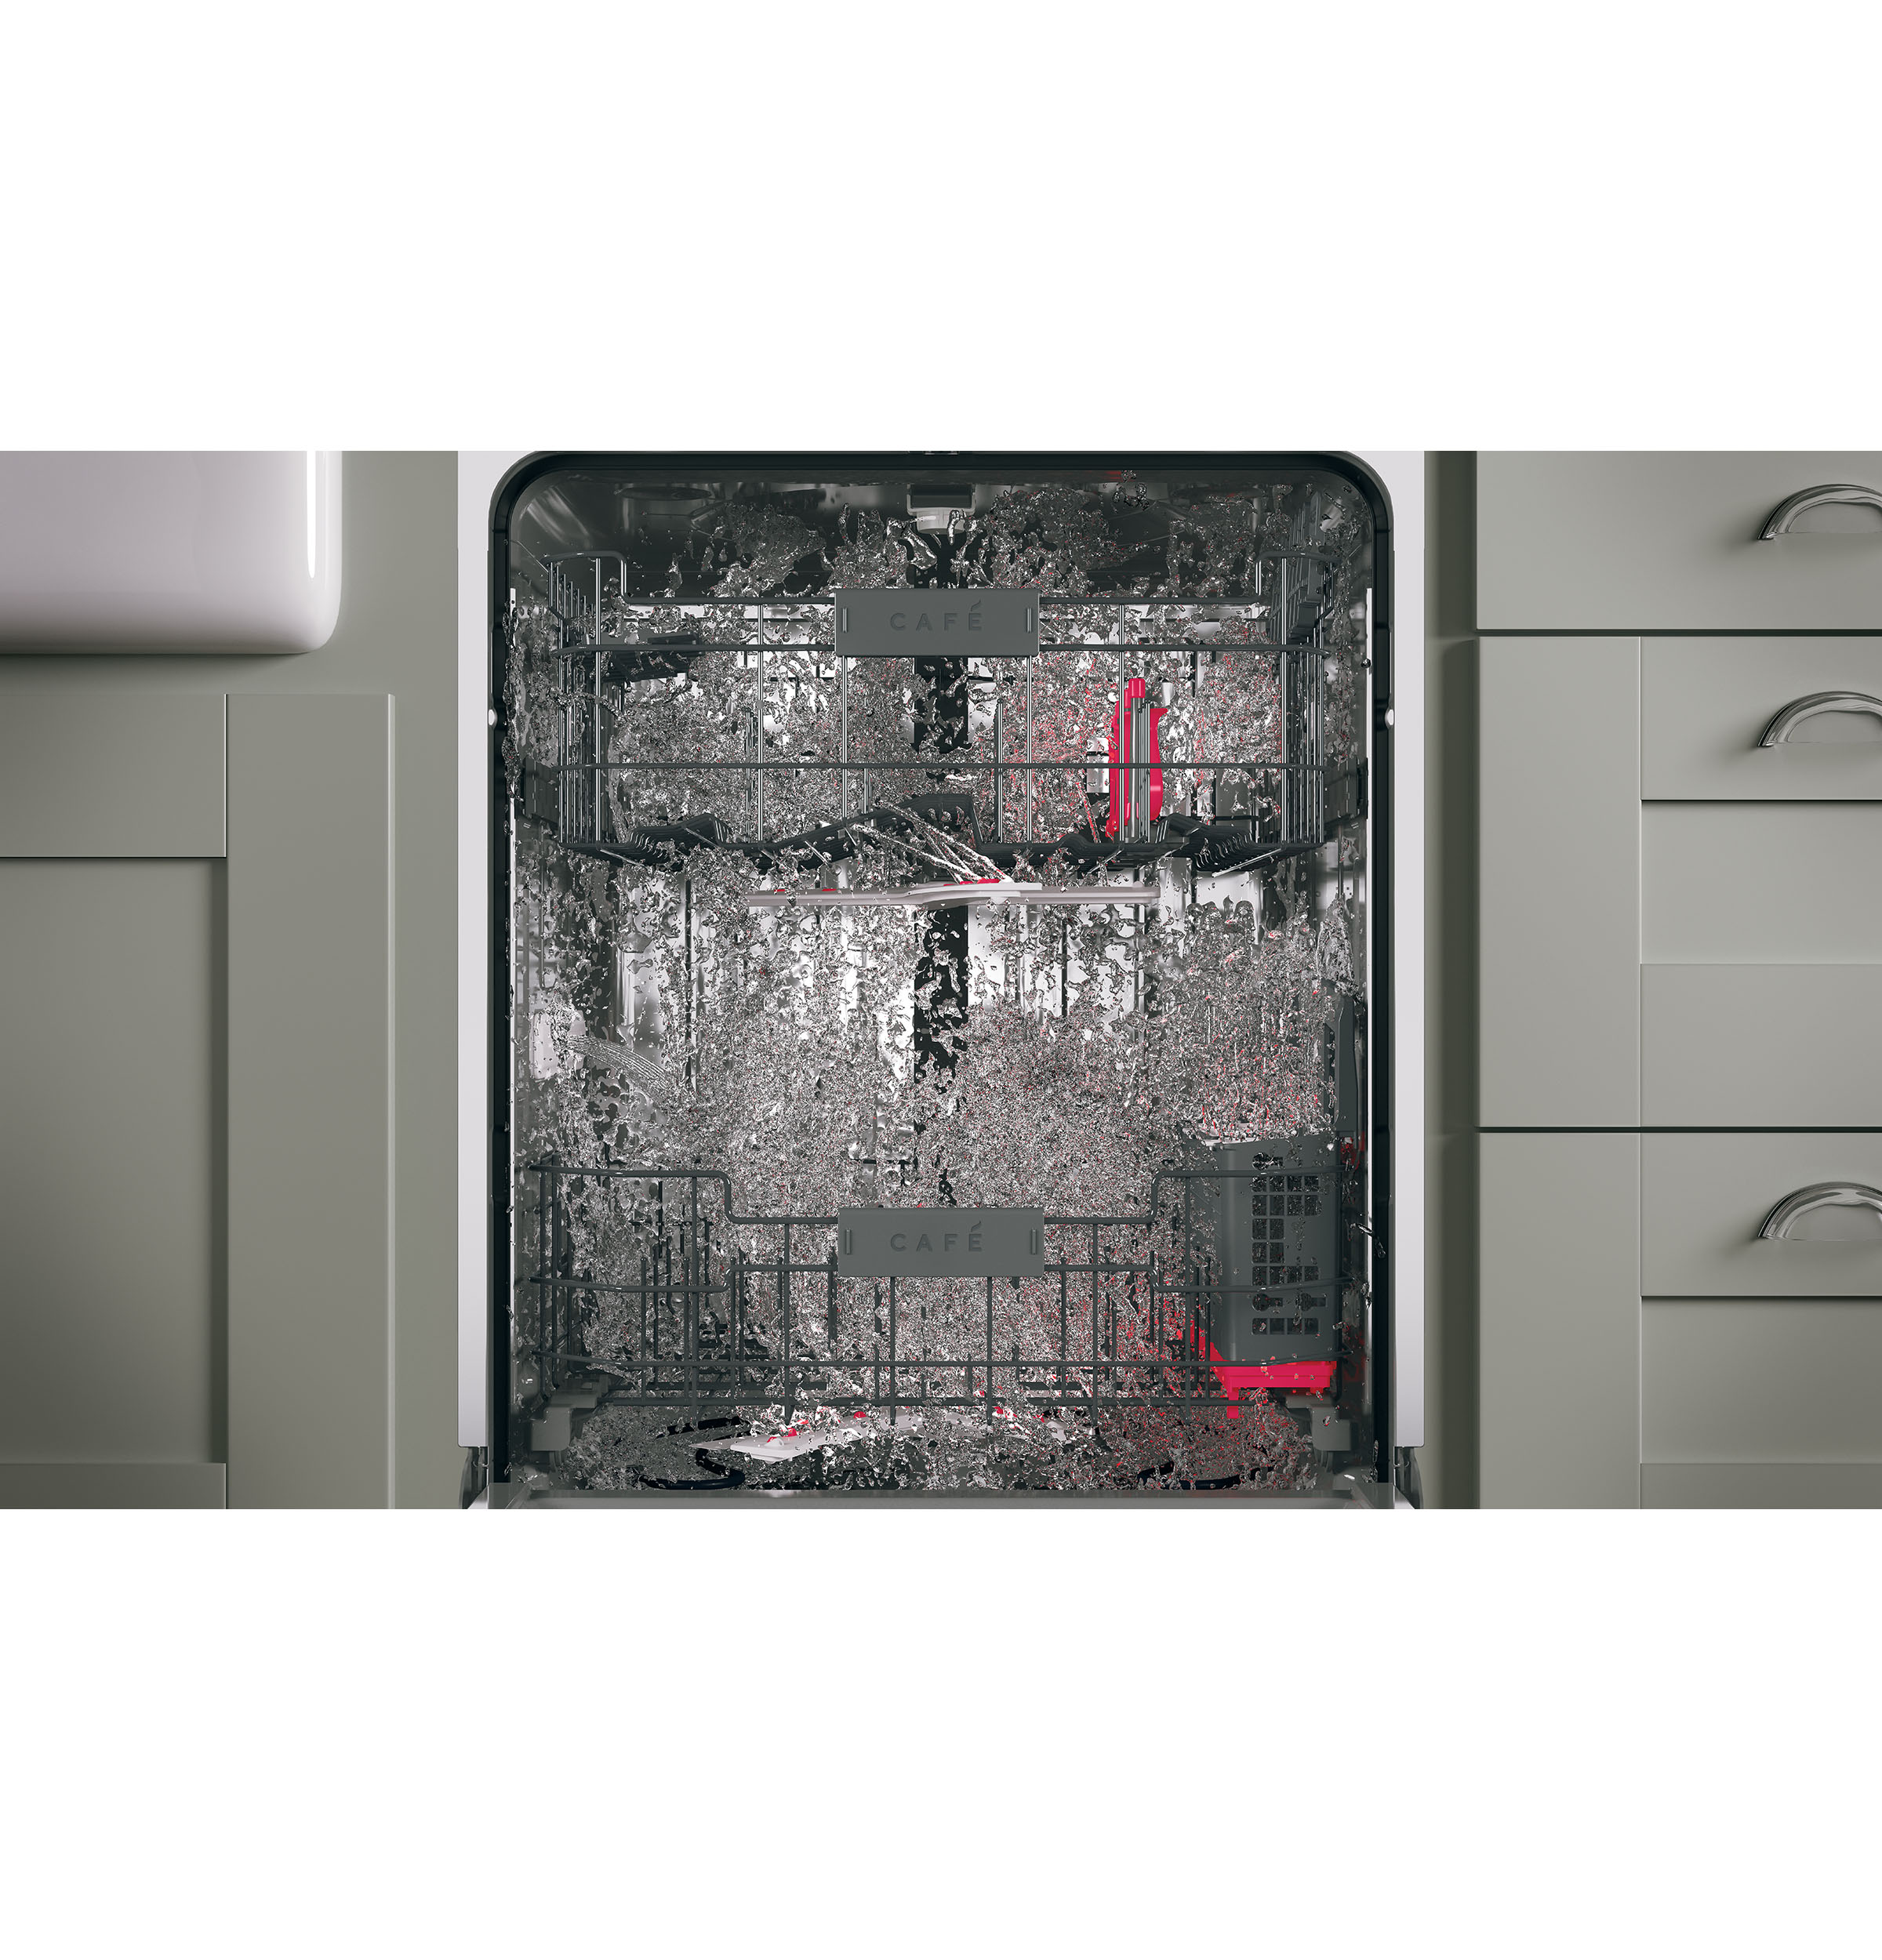 Model: CDT866P2MS1 | GE Café™ Series Stainless Interior Built-In Dishwasher with Hidden Controls